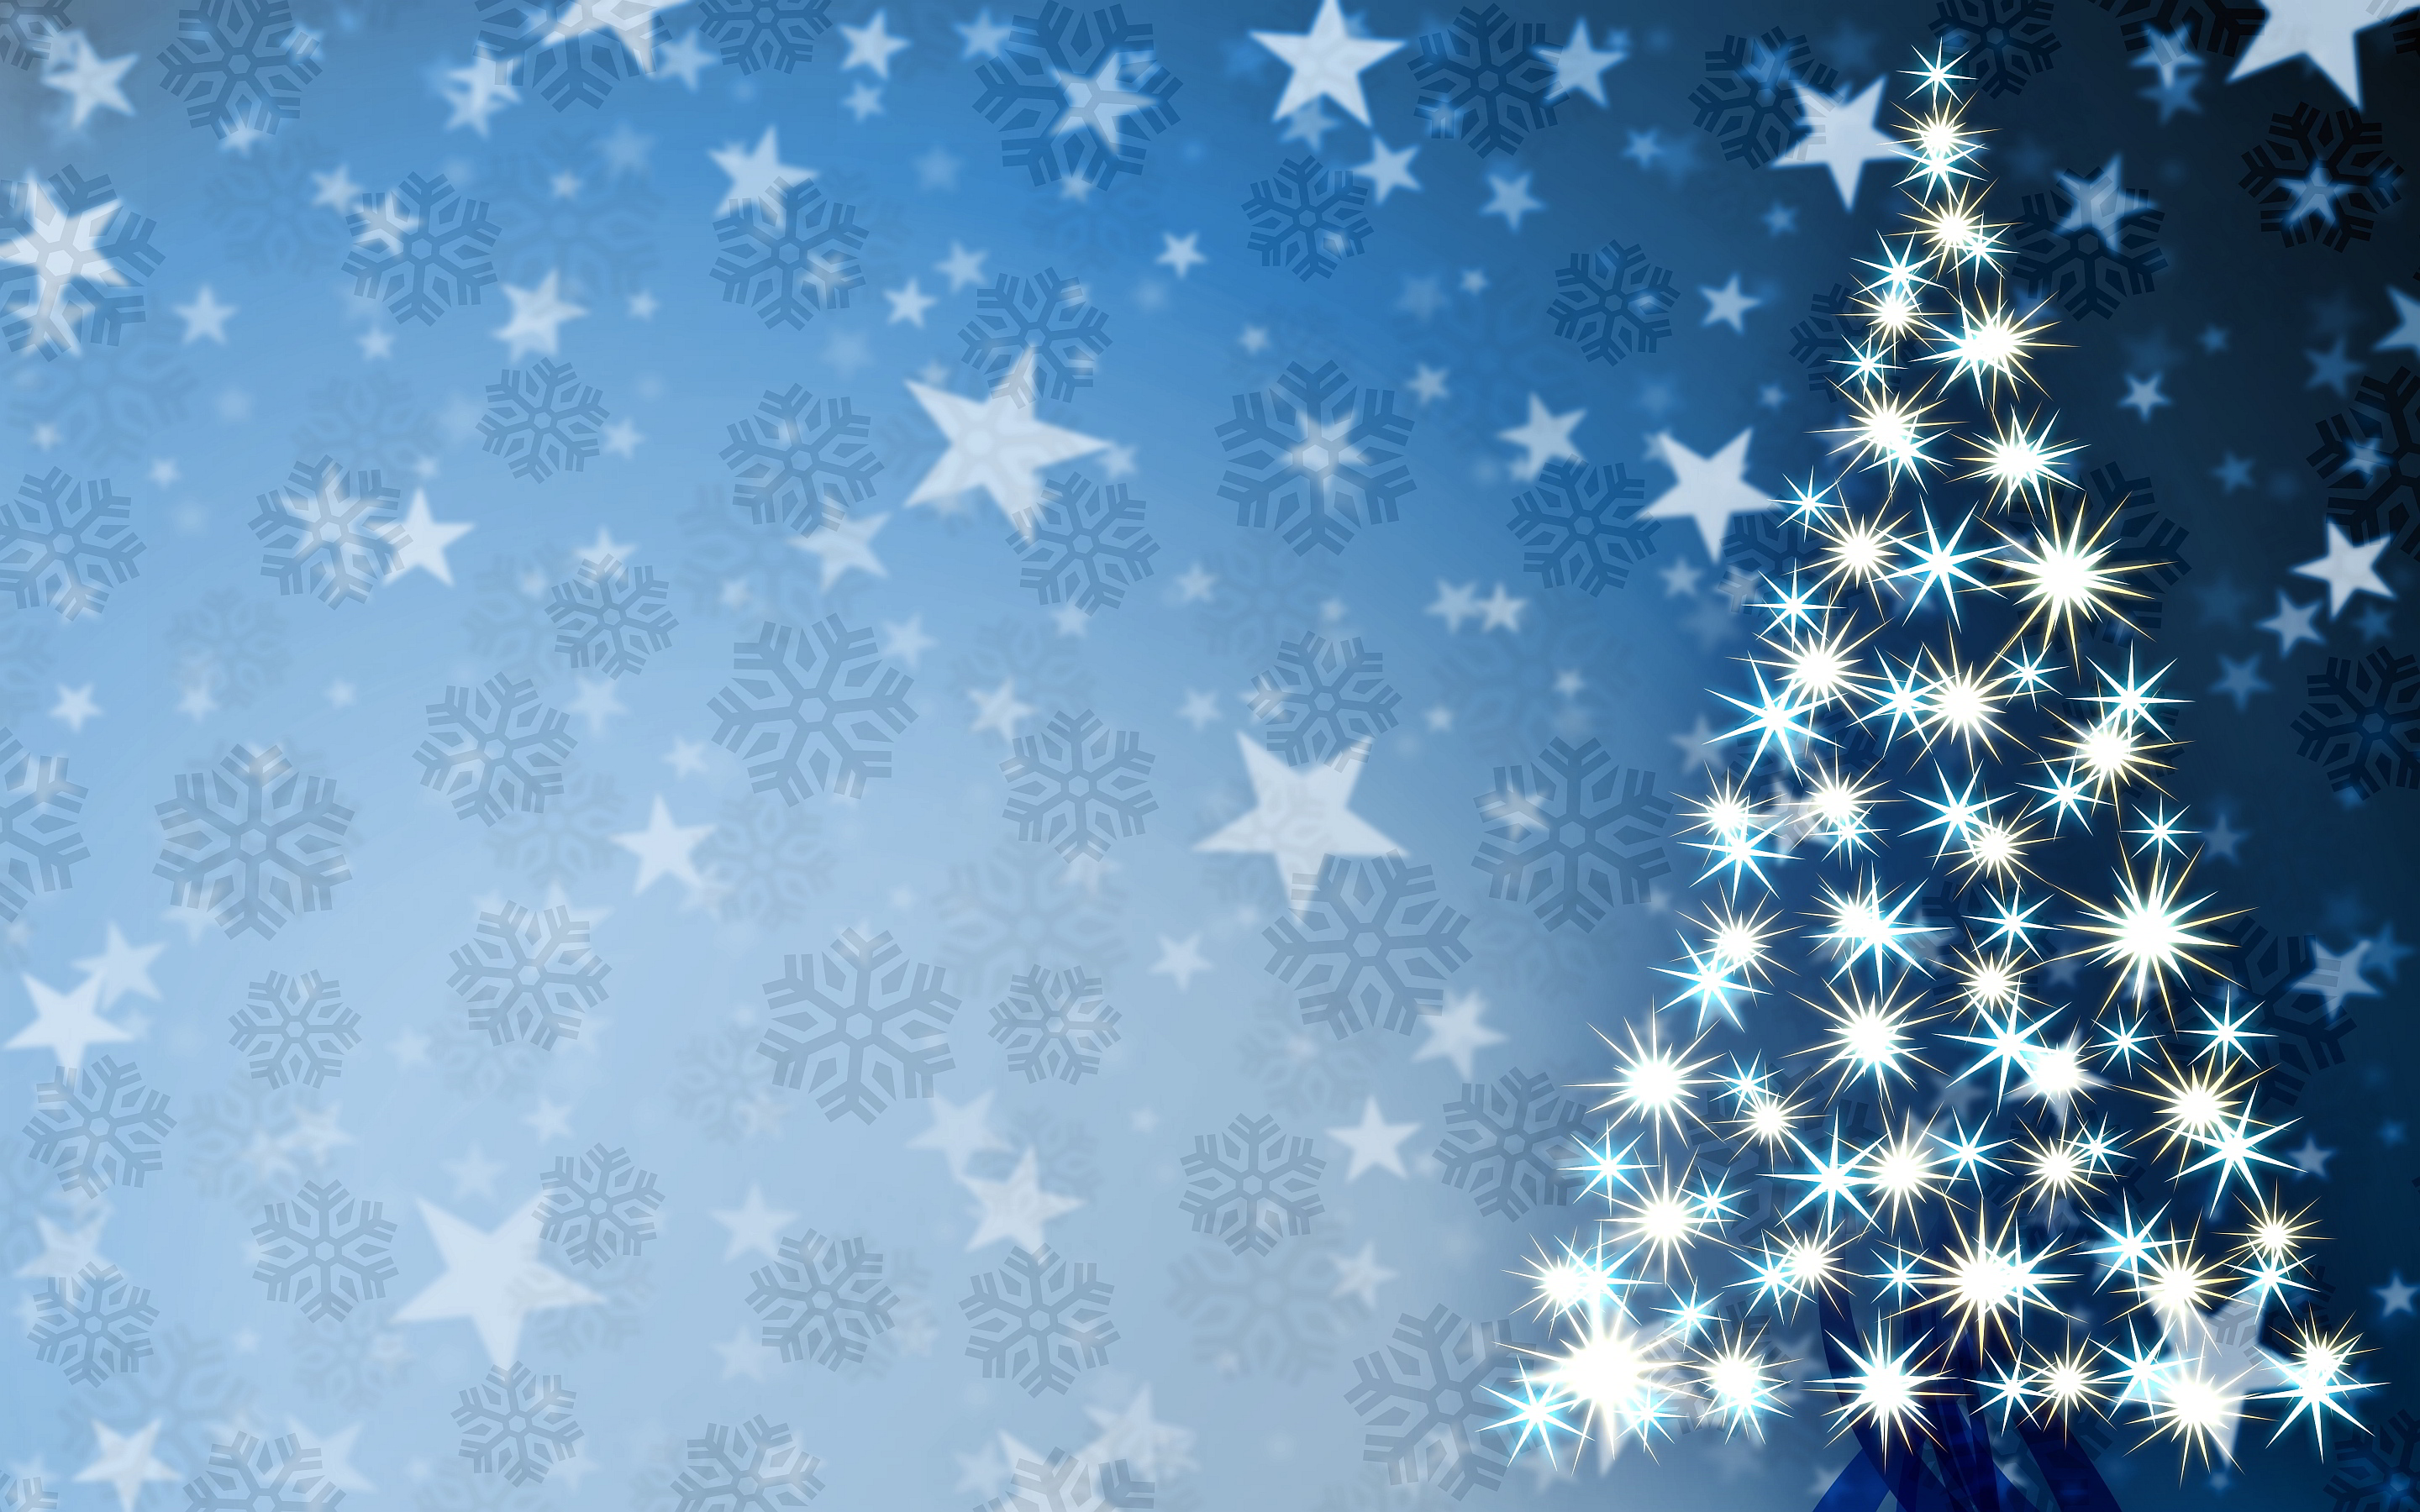 Super Hd Christmas Wallpapers Merry Christmas 2880x1800